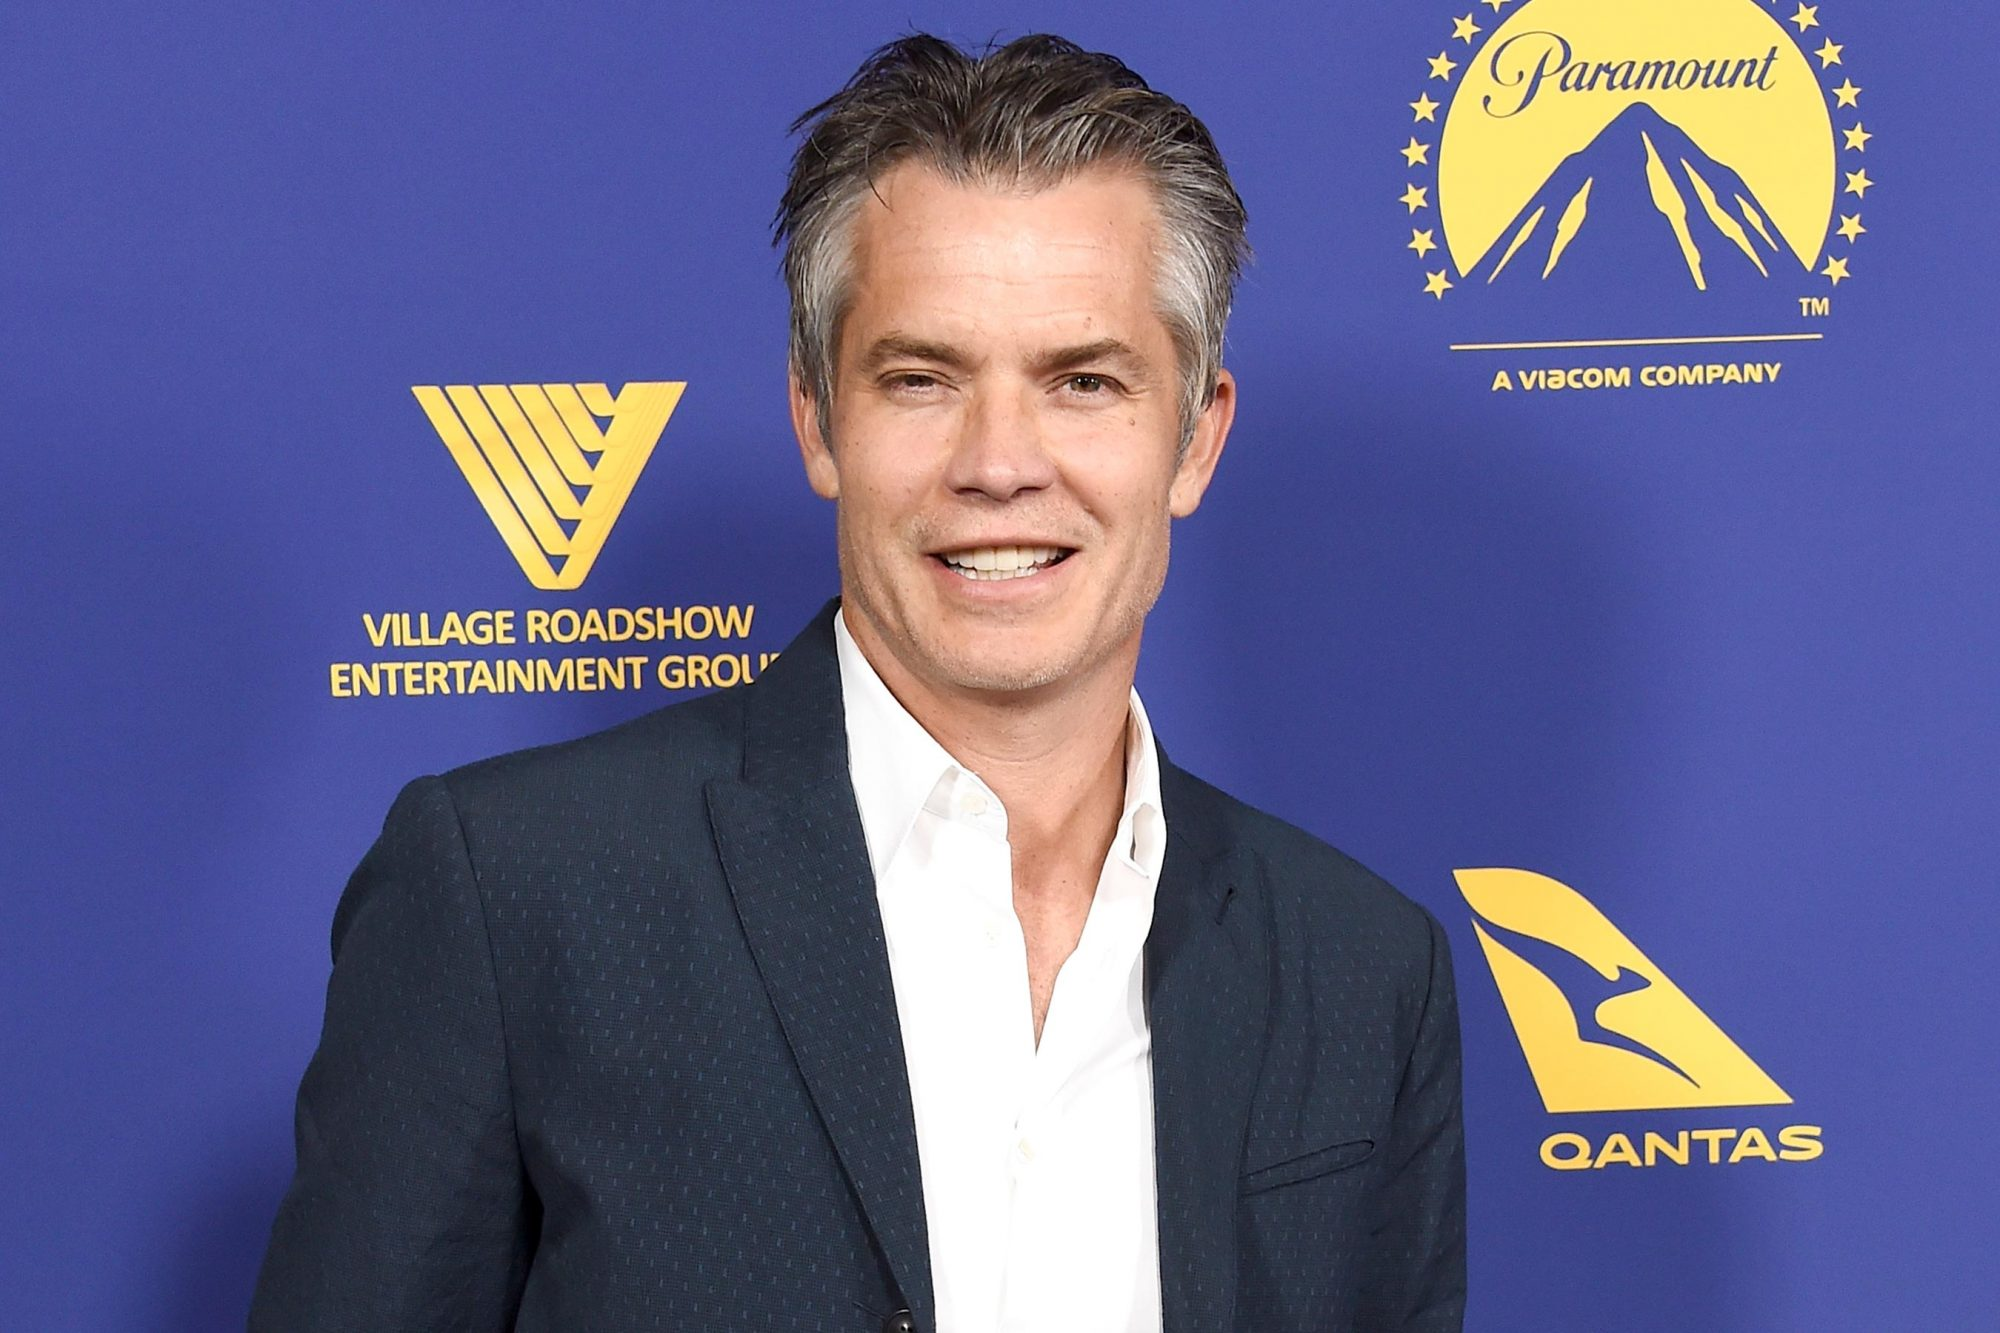 LOS ANGELES, CA - OCTOBER 24: Actor Timothy Olyphant arrives at the 7th Annual Australians In Film Award & Benefit Dinner at Paramount Studios on October 24, 2018 in Los Angeles, California. (Photo by Gregg DeGuire/Getty Images)